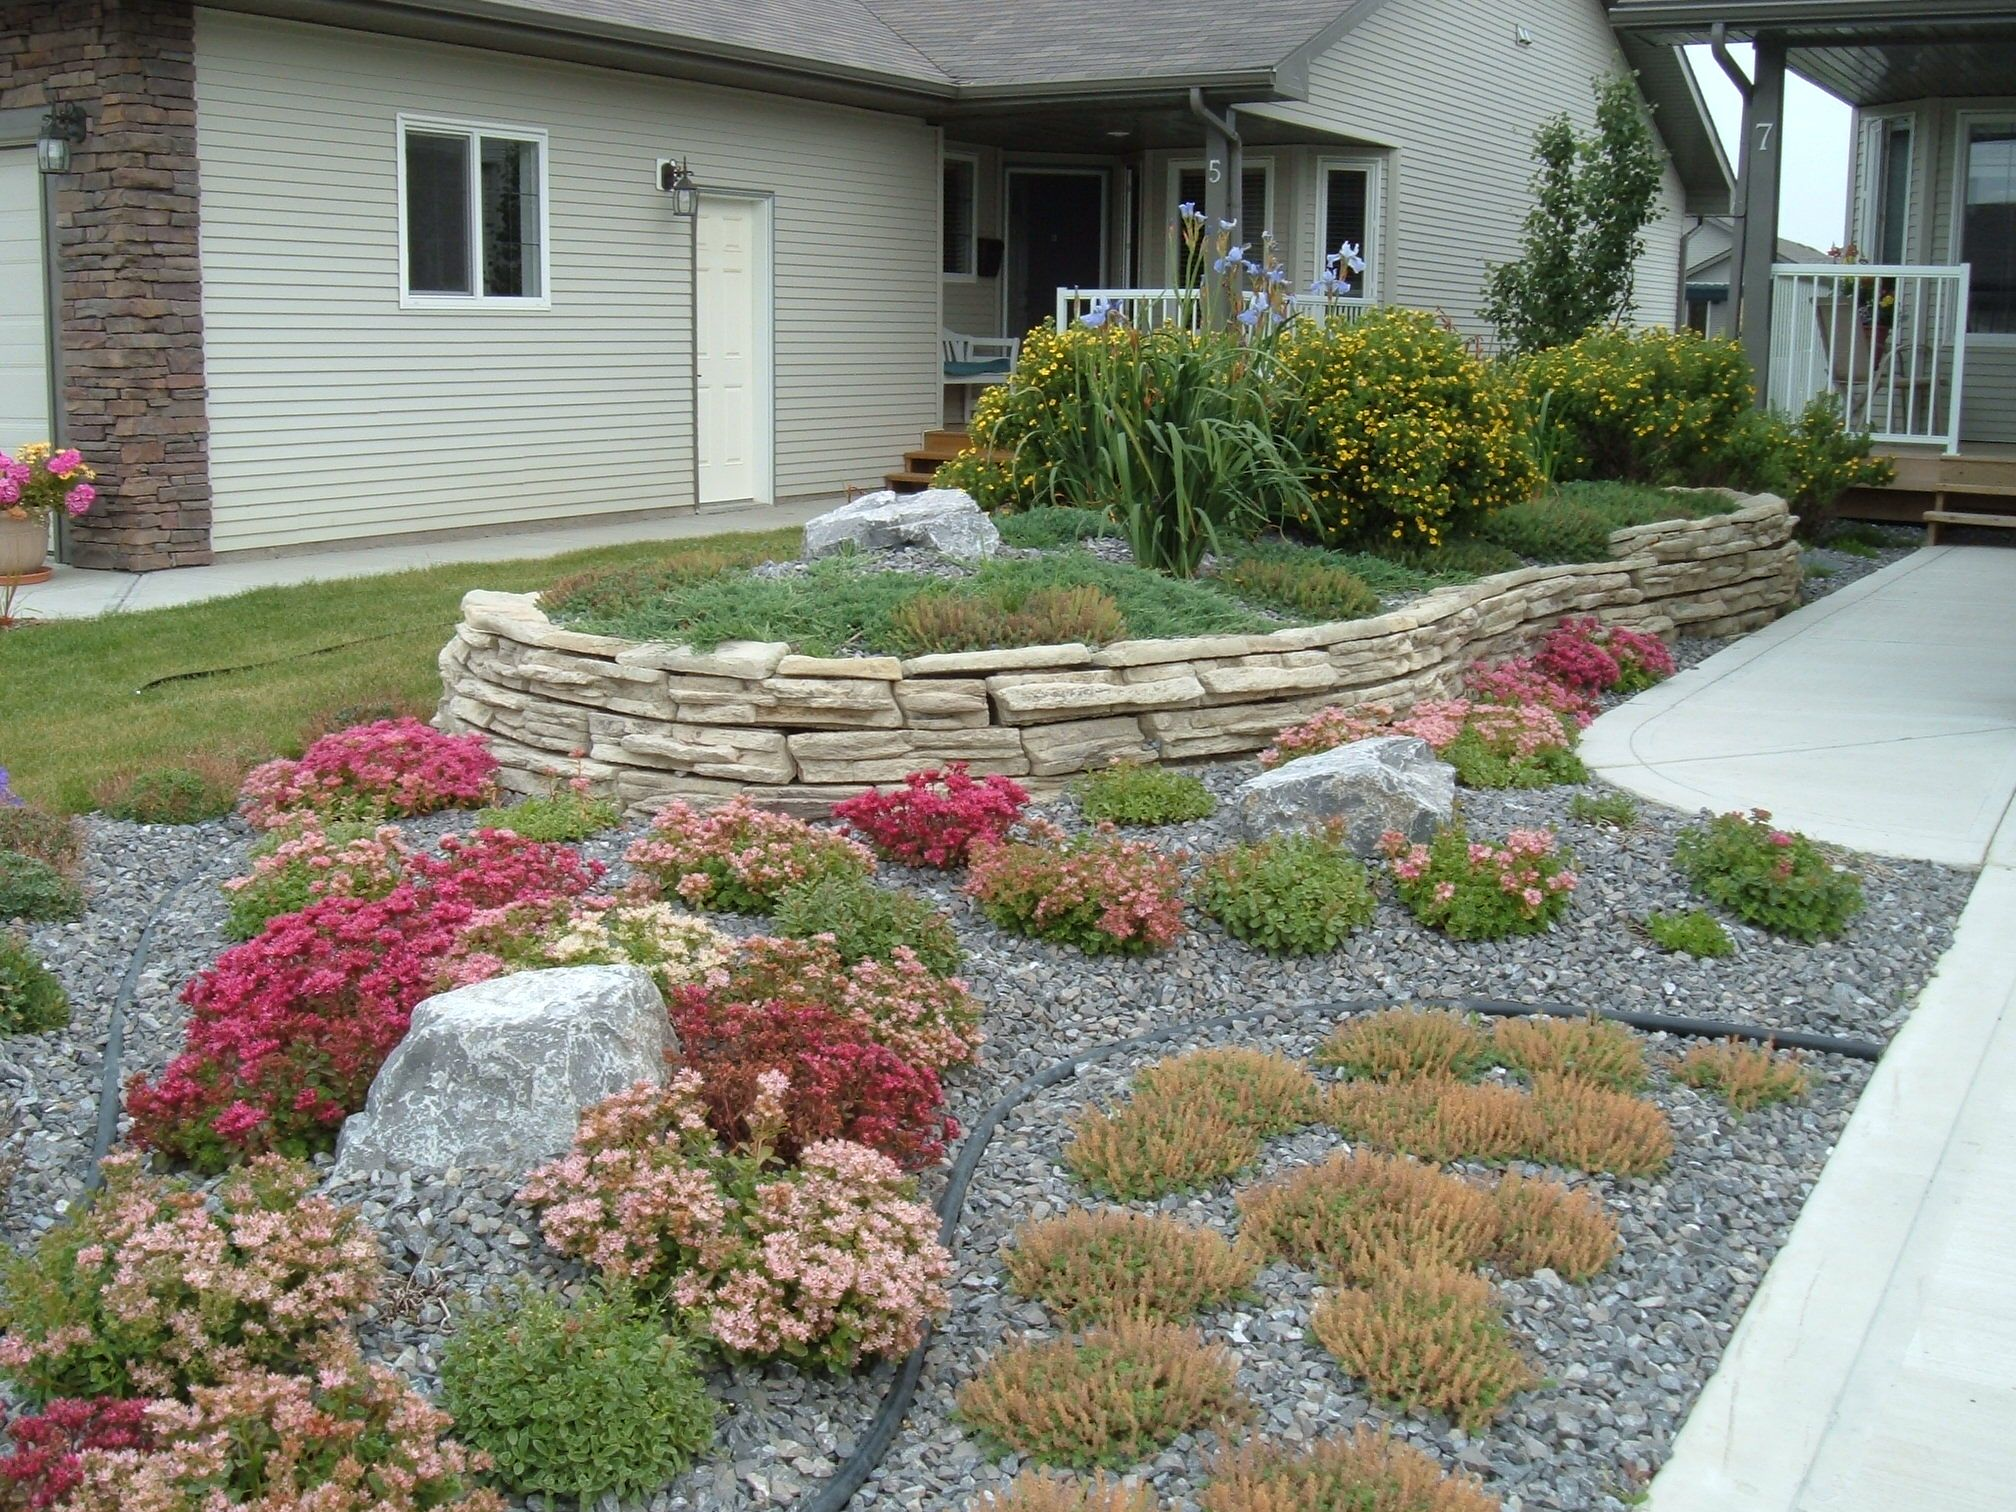 minimal maintenance landscaping a no lawn front yard with On no maintenance flower bed